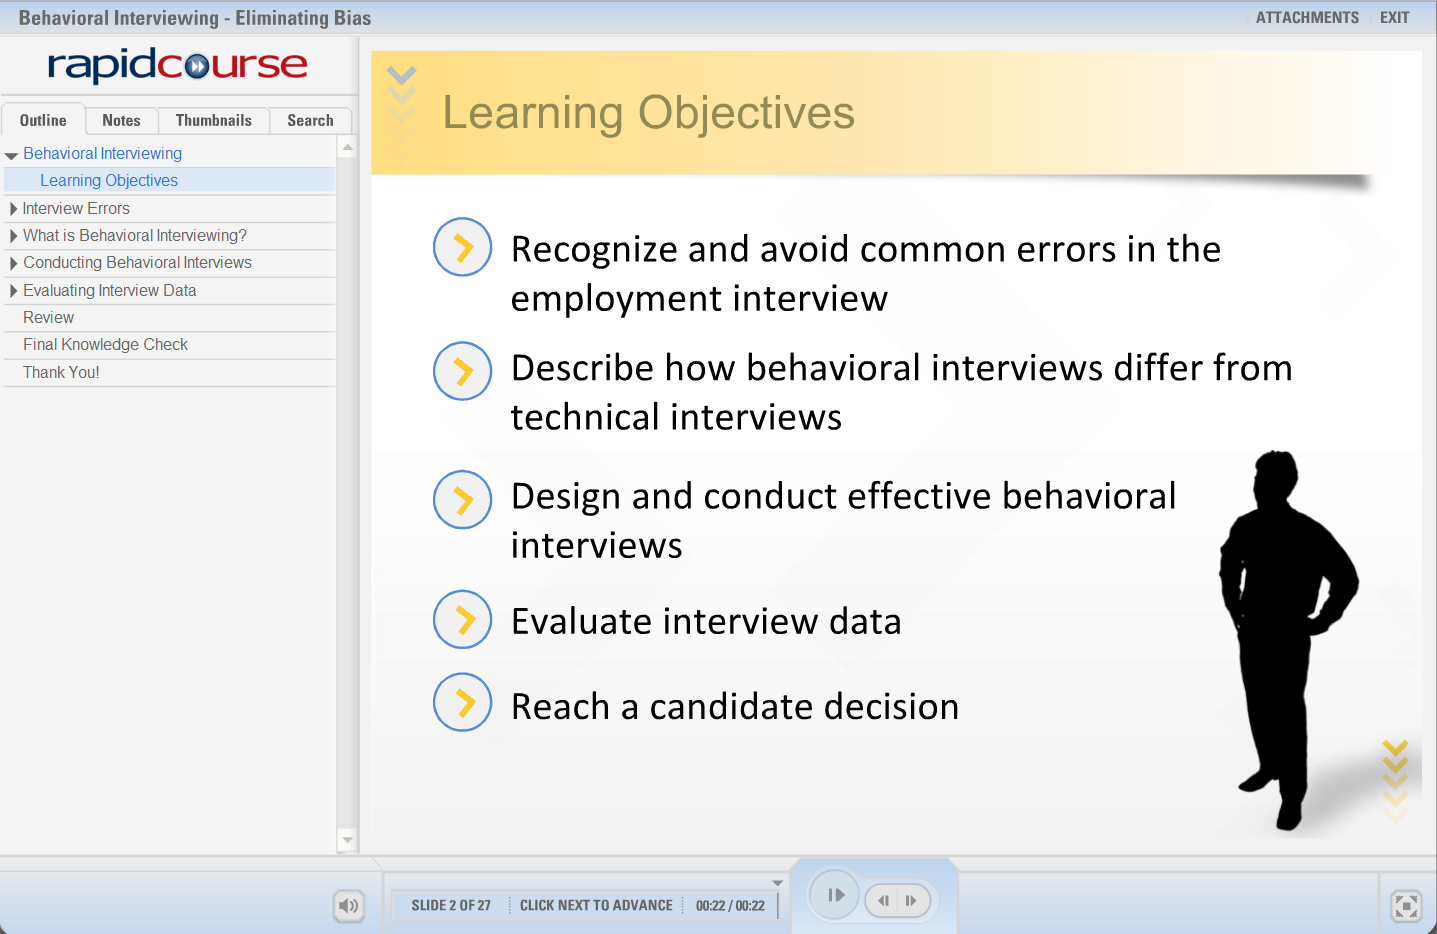 behavioral interviewing eliminating bias rapid courserapid course behavioral interviewing screenshot 2